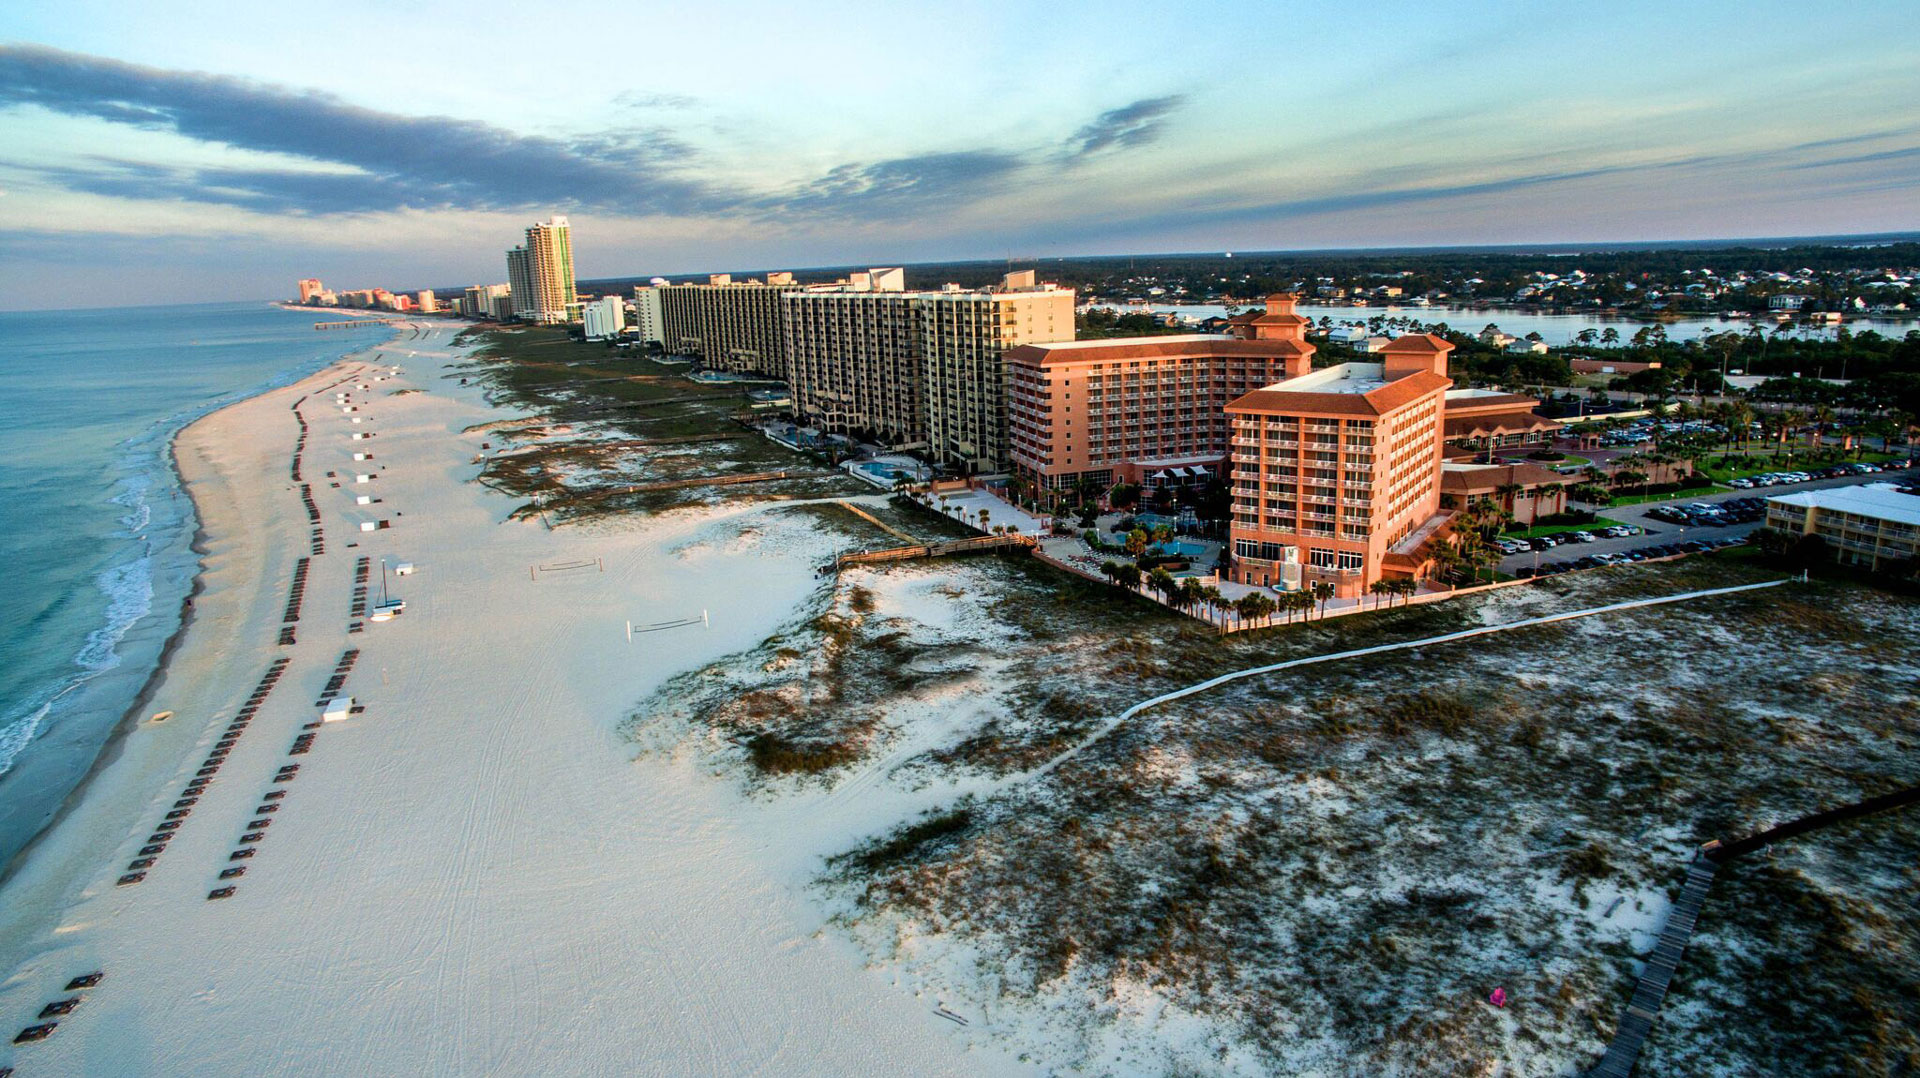 resorts along the beach